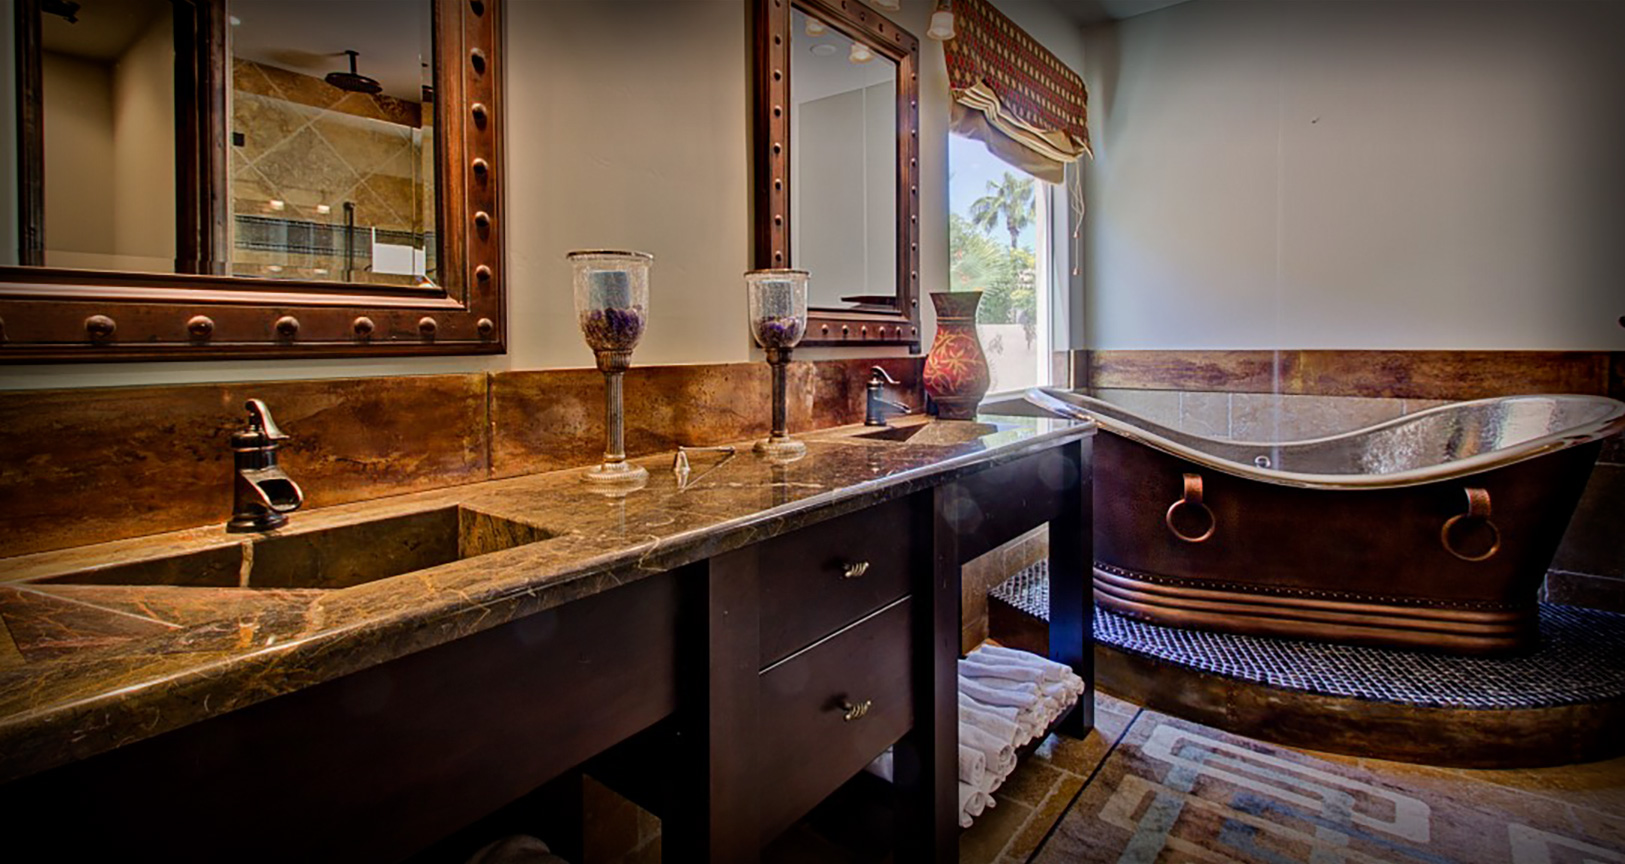 Kitchen Vs Bathroom Cabinets Cornerstone Cabinet Company